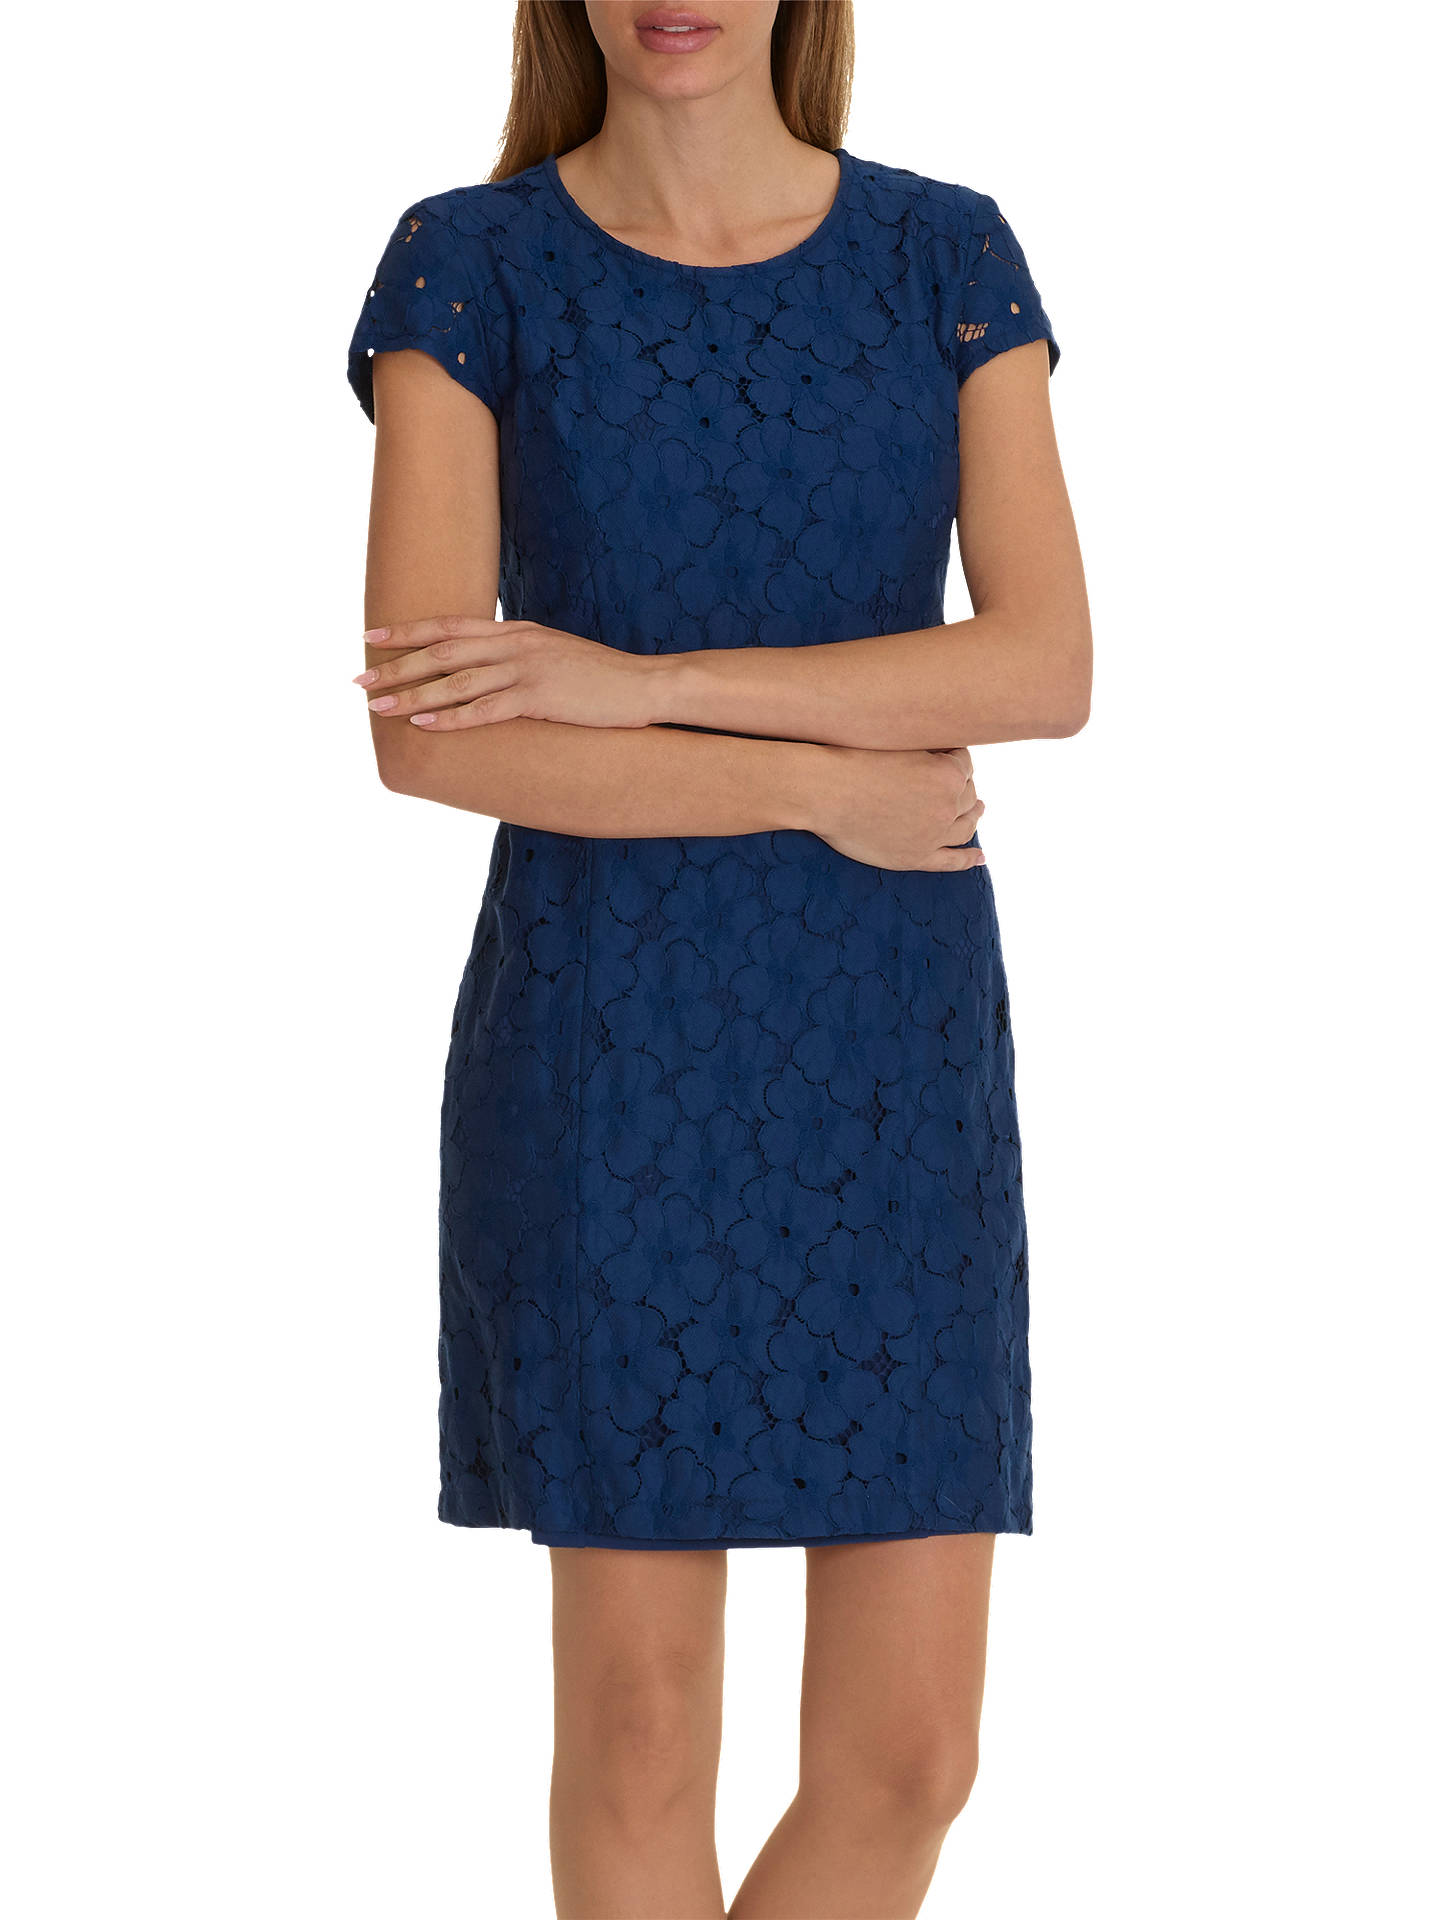 BuyBetty Barclay Lace Shift Dress, Morning Sky, 10 Online at johnlewis.com